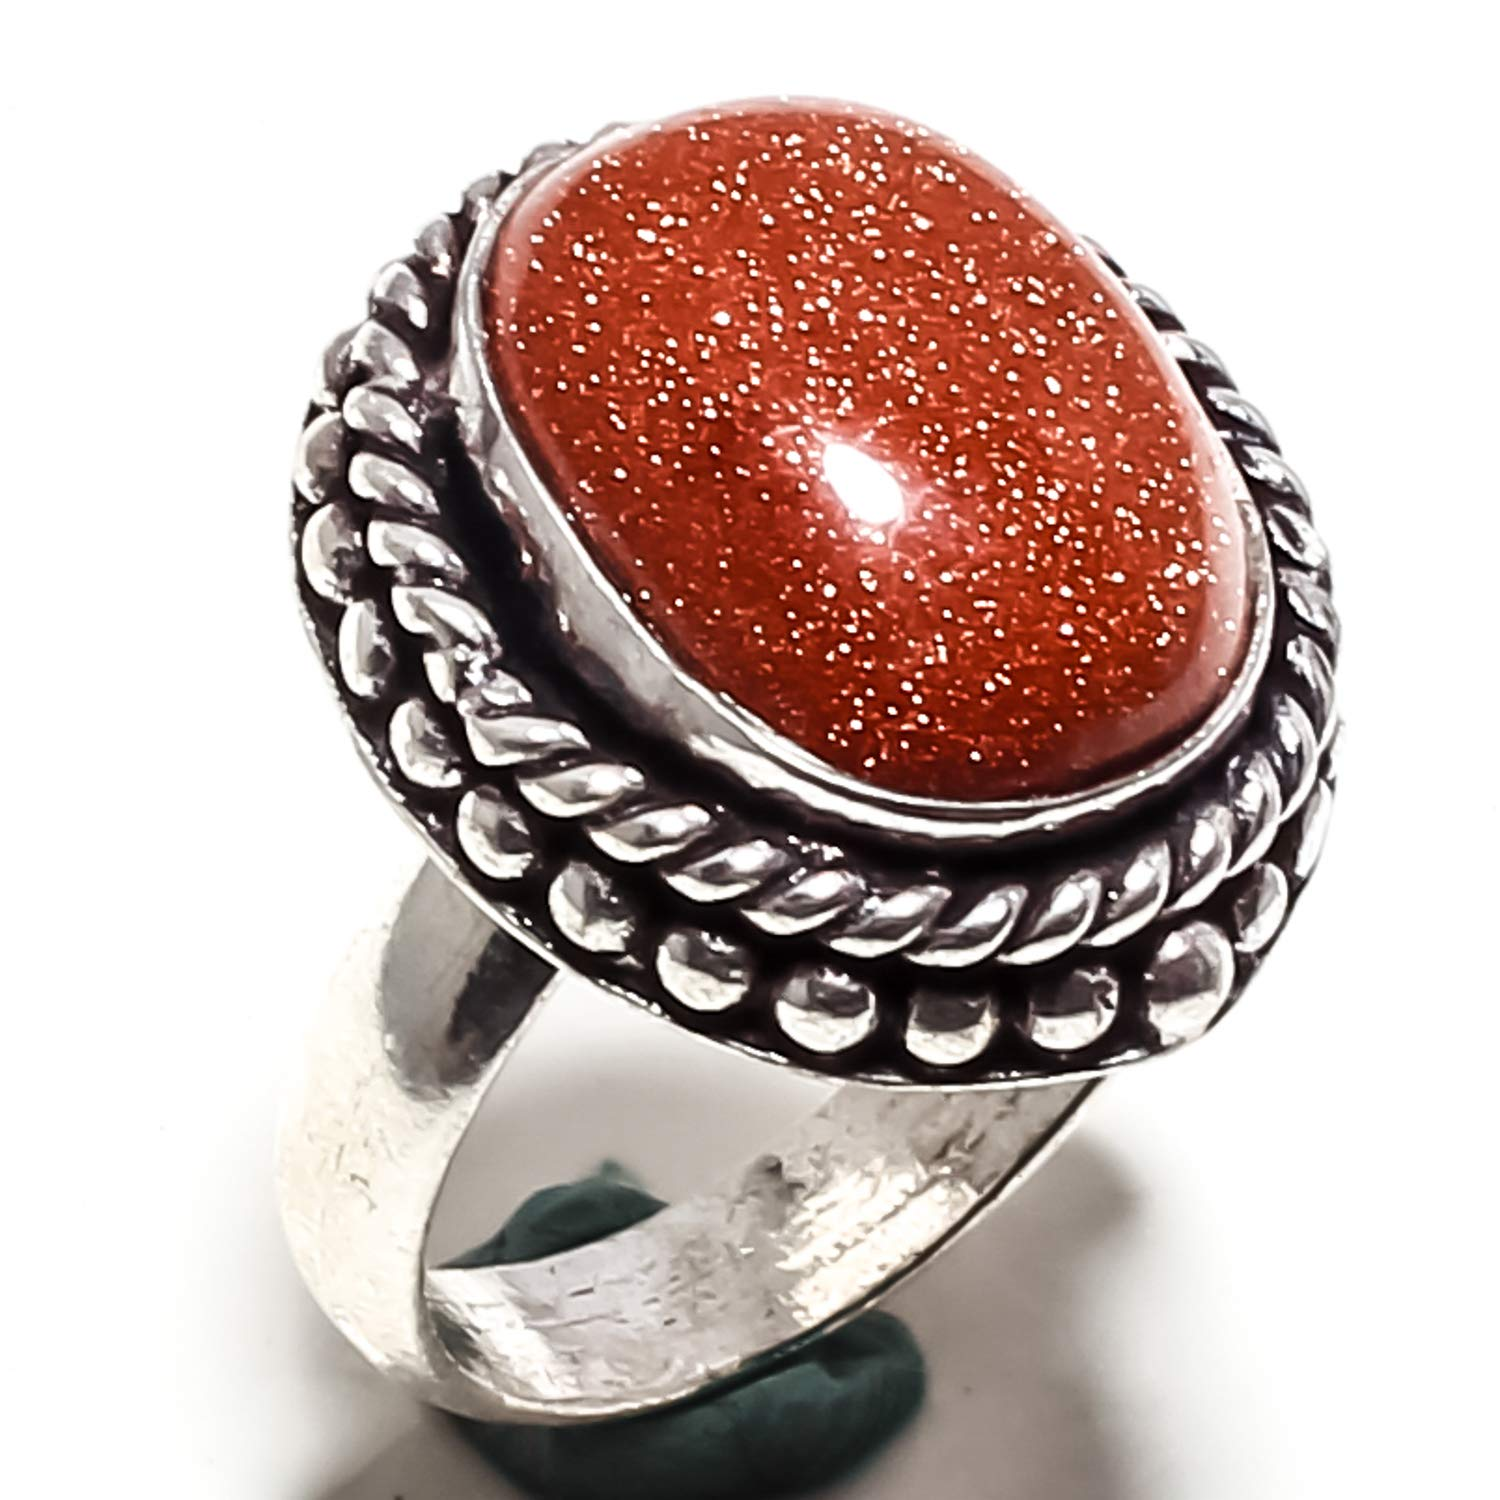 - - 6.25 jewelsworld Pretty Red Sunstone Gemstone Ring Handmade 925 Sterling Silver Plated Jewelry -Statement Ring - US SF-1907 Ring Size